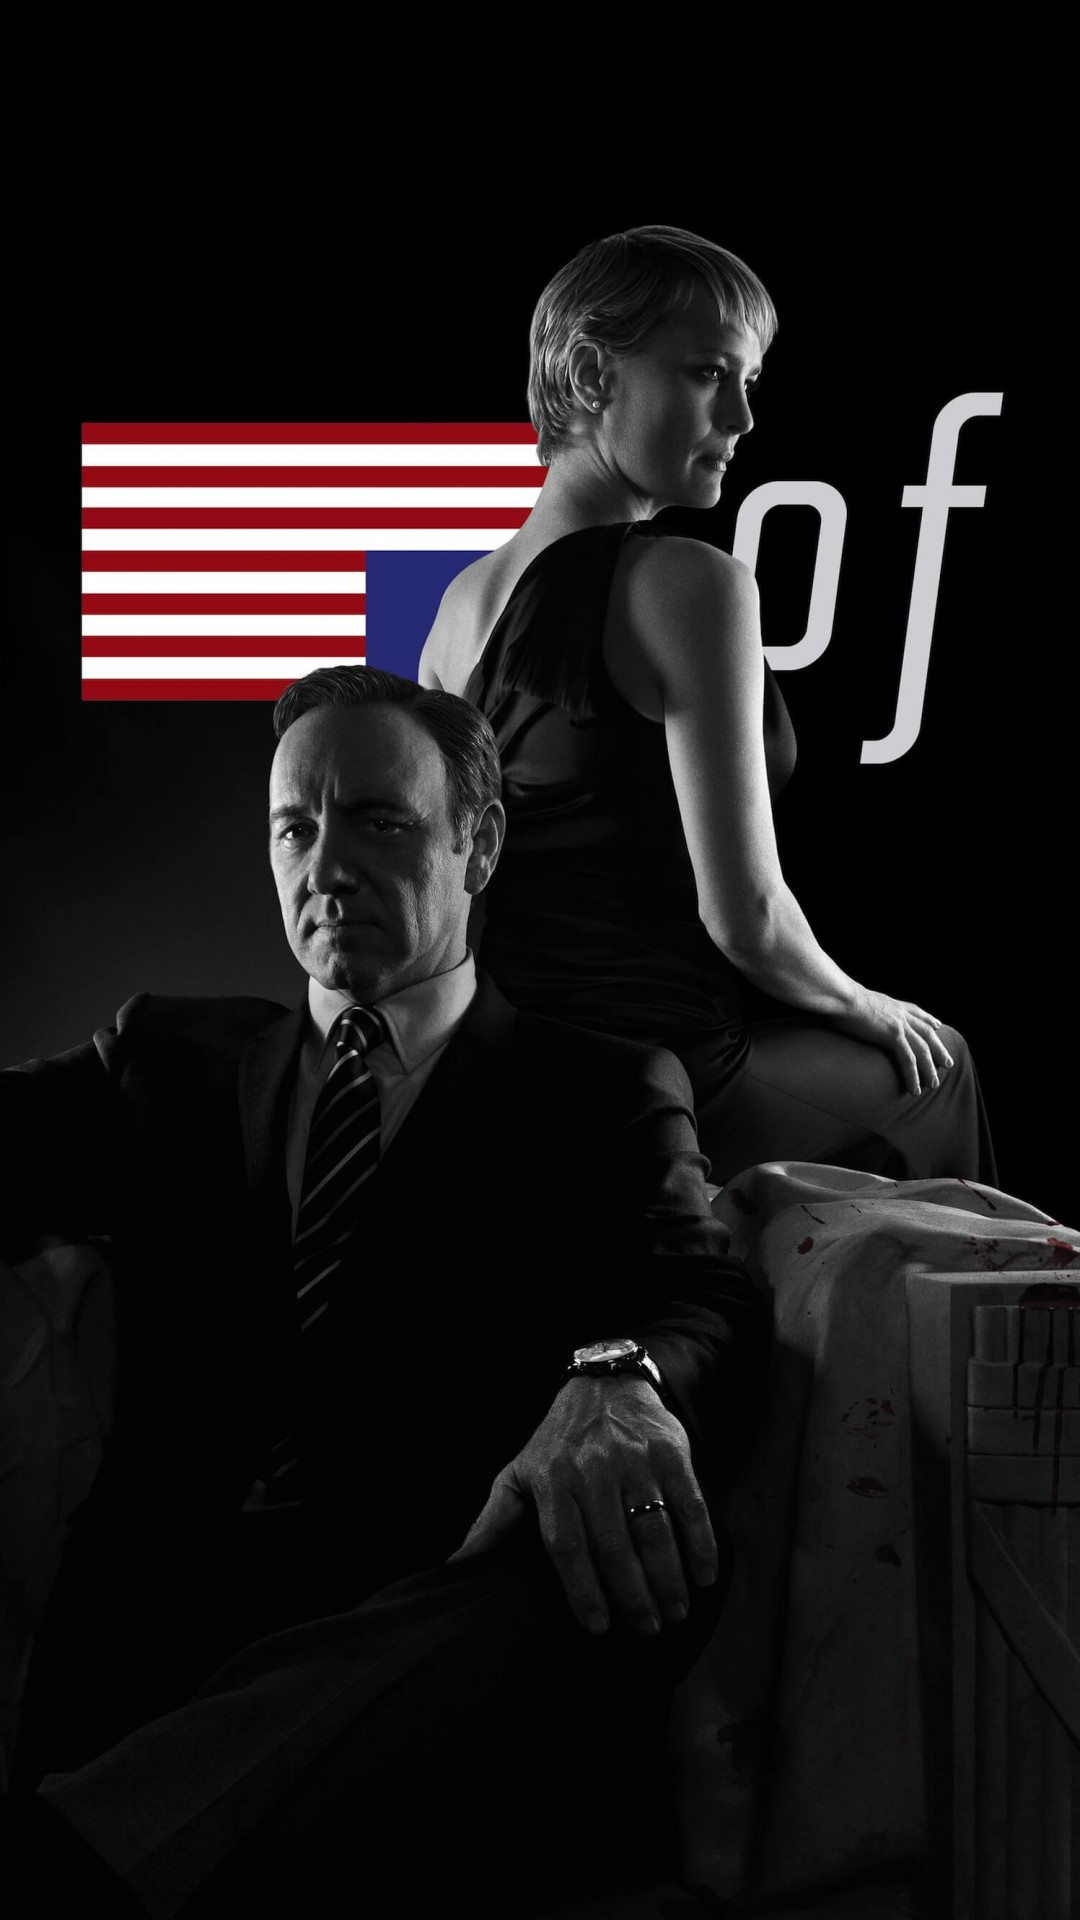 House of Cards - Black & White Wallpaper for SONY Xperia Z3